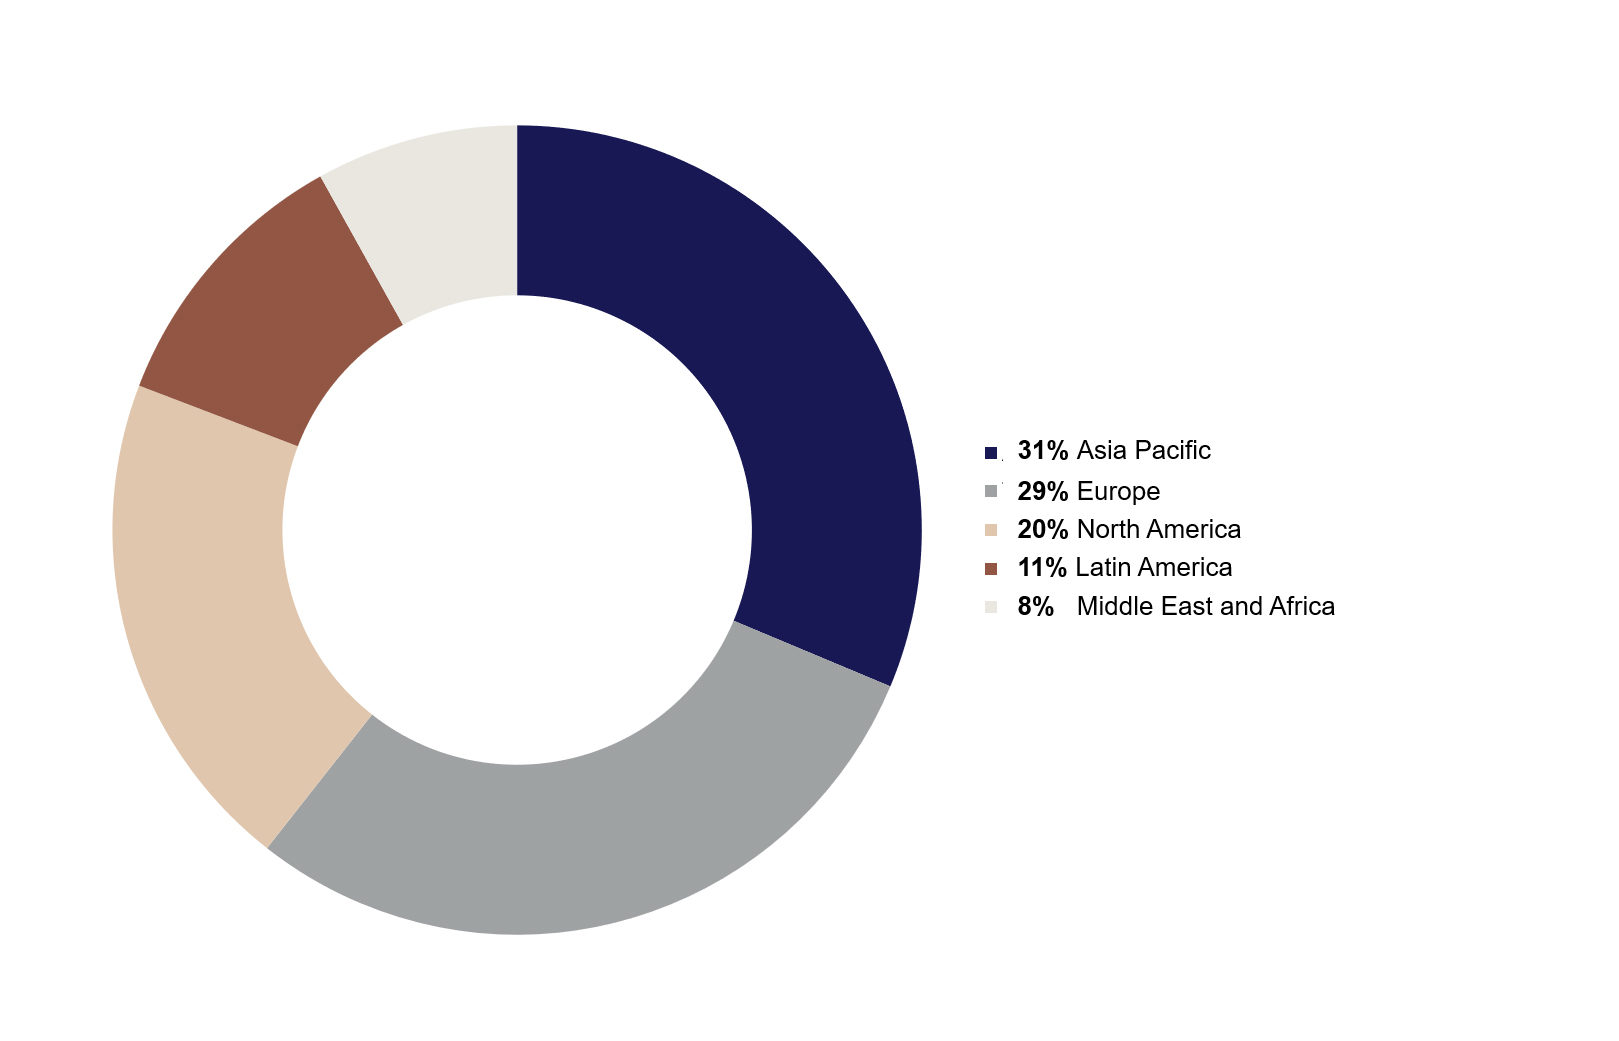 Regional distribution of decorative paints